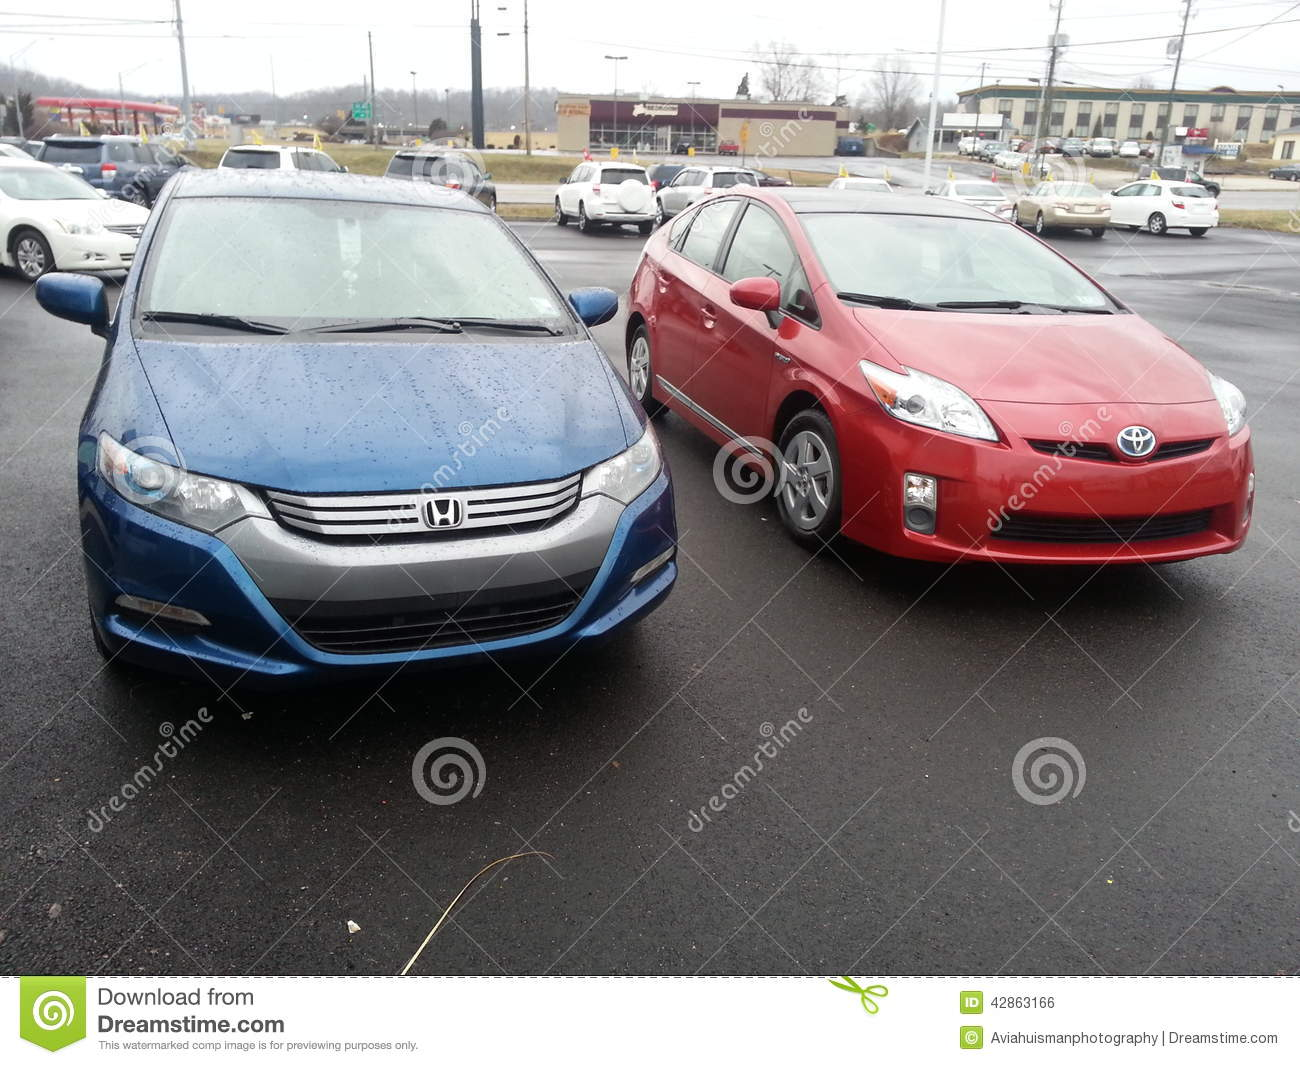 Image Result For Honda Vehiclesa